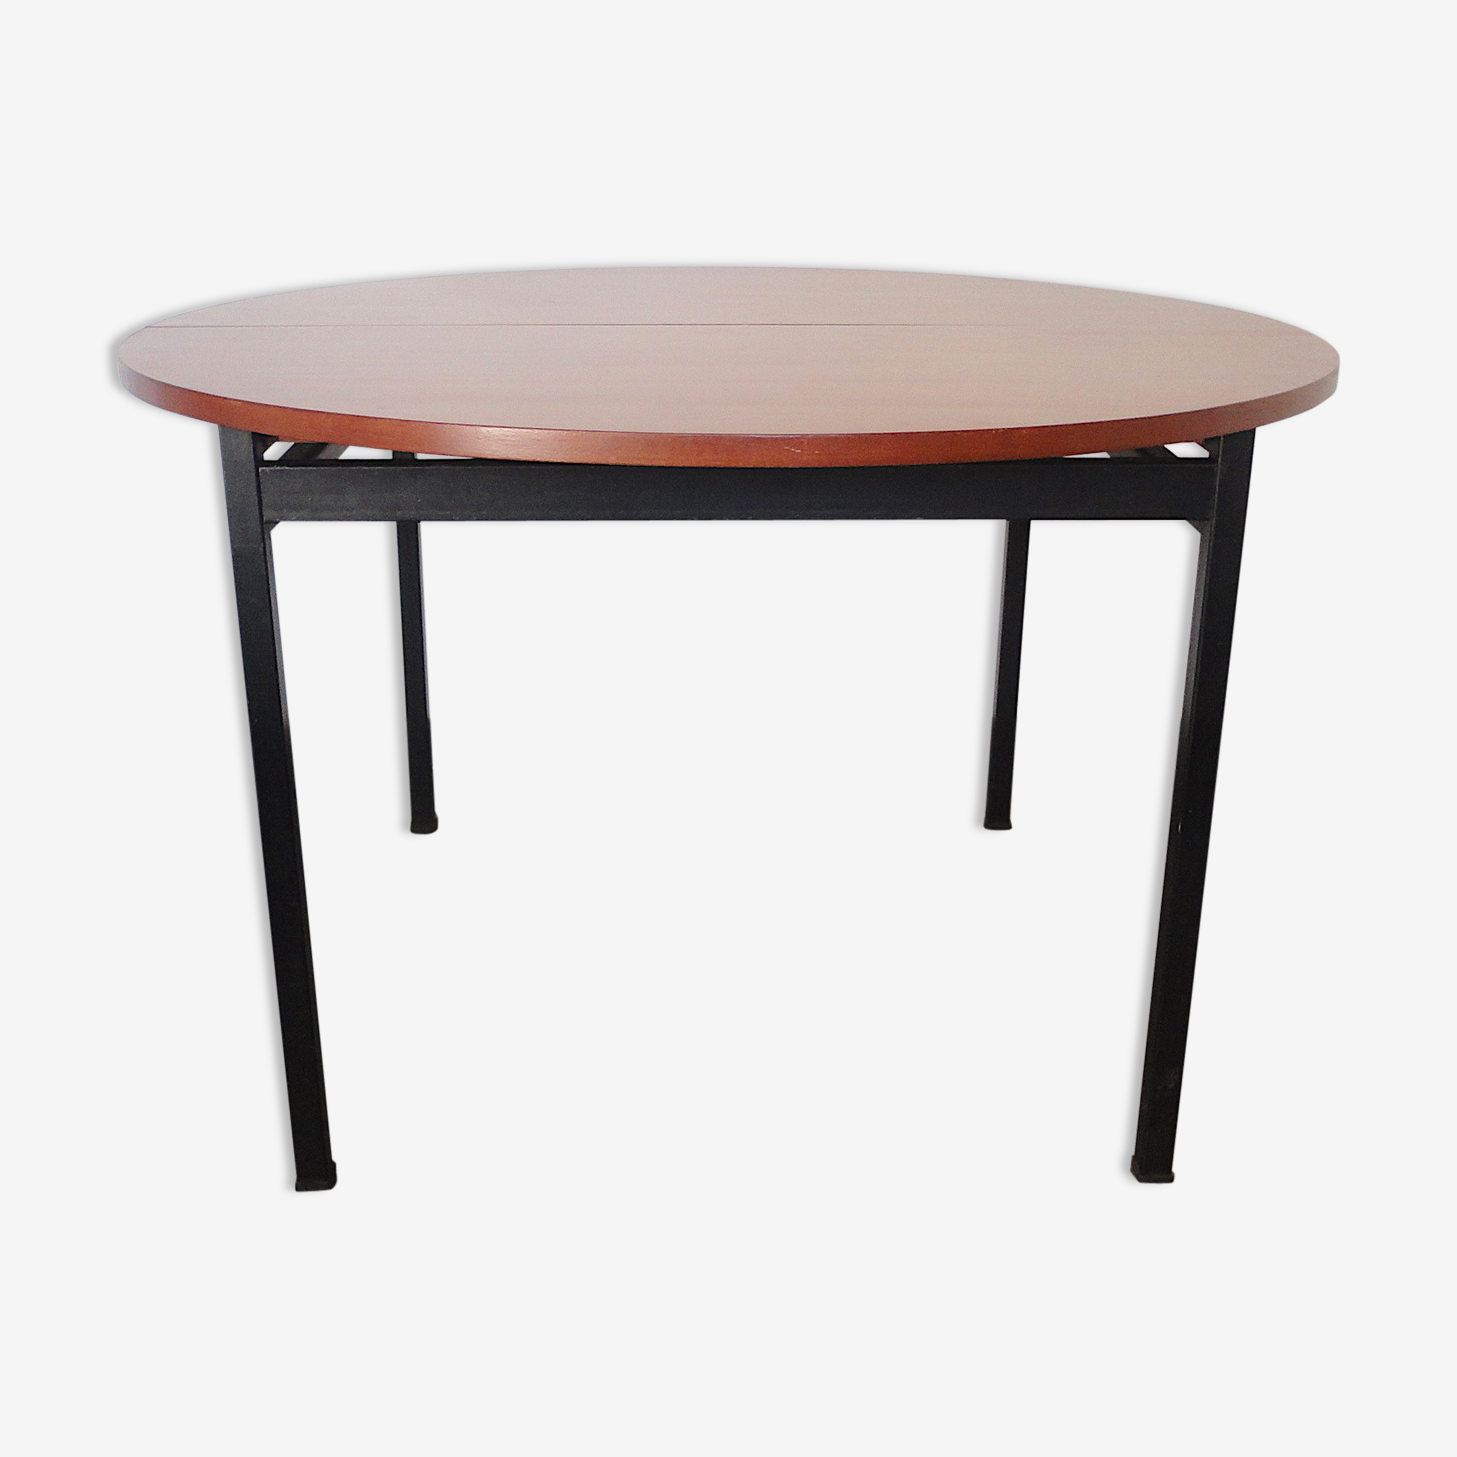 Table dining round by Claude Vassal for cell, 1950